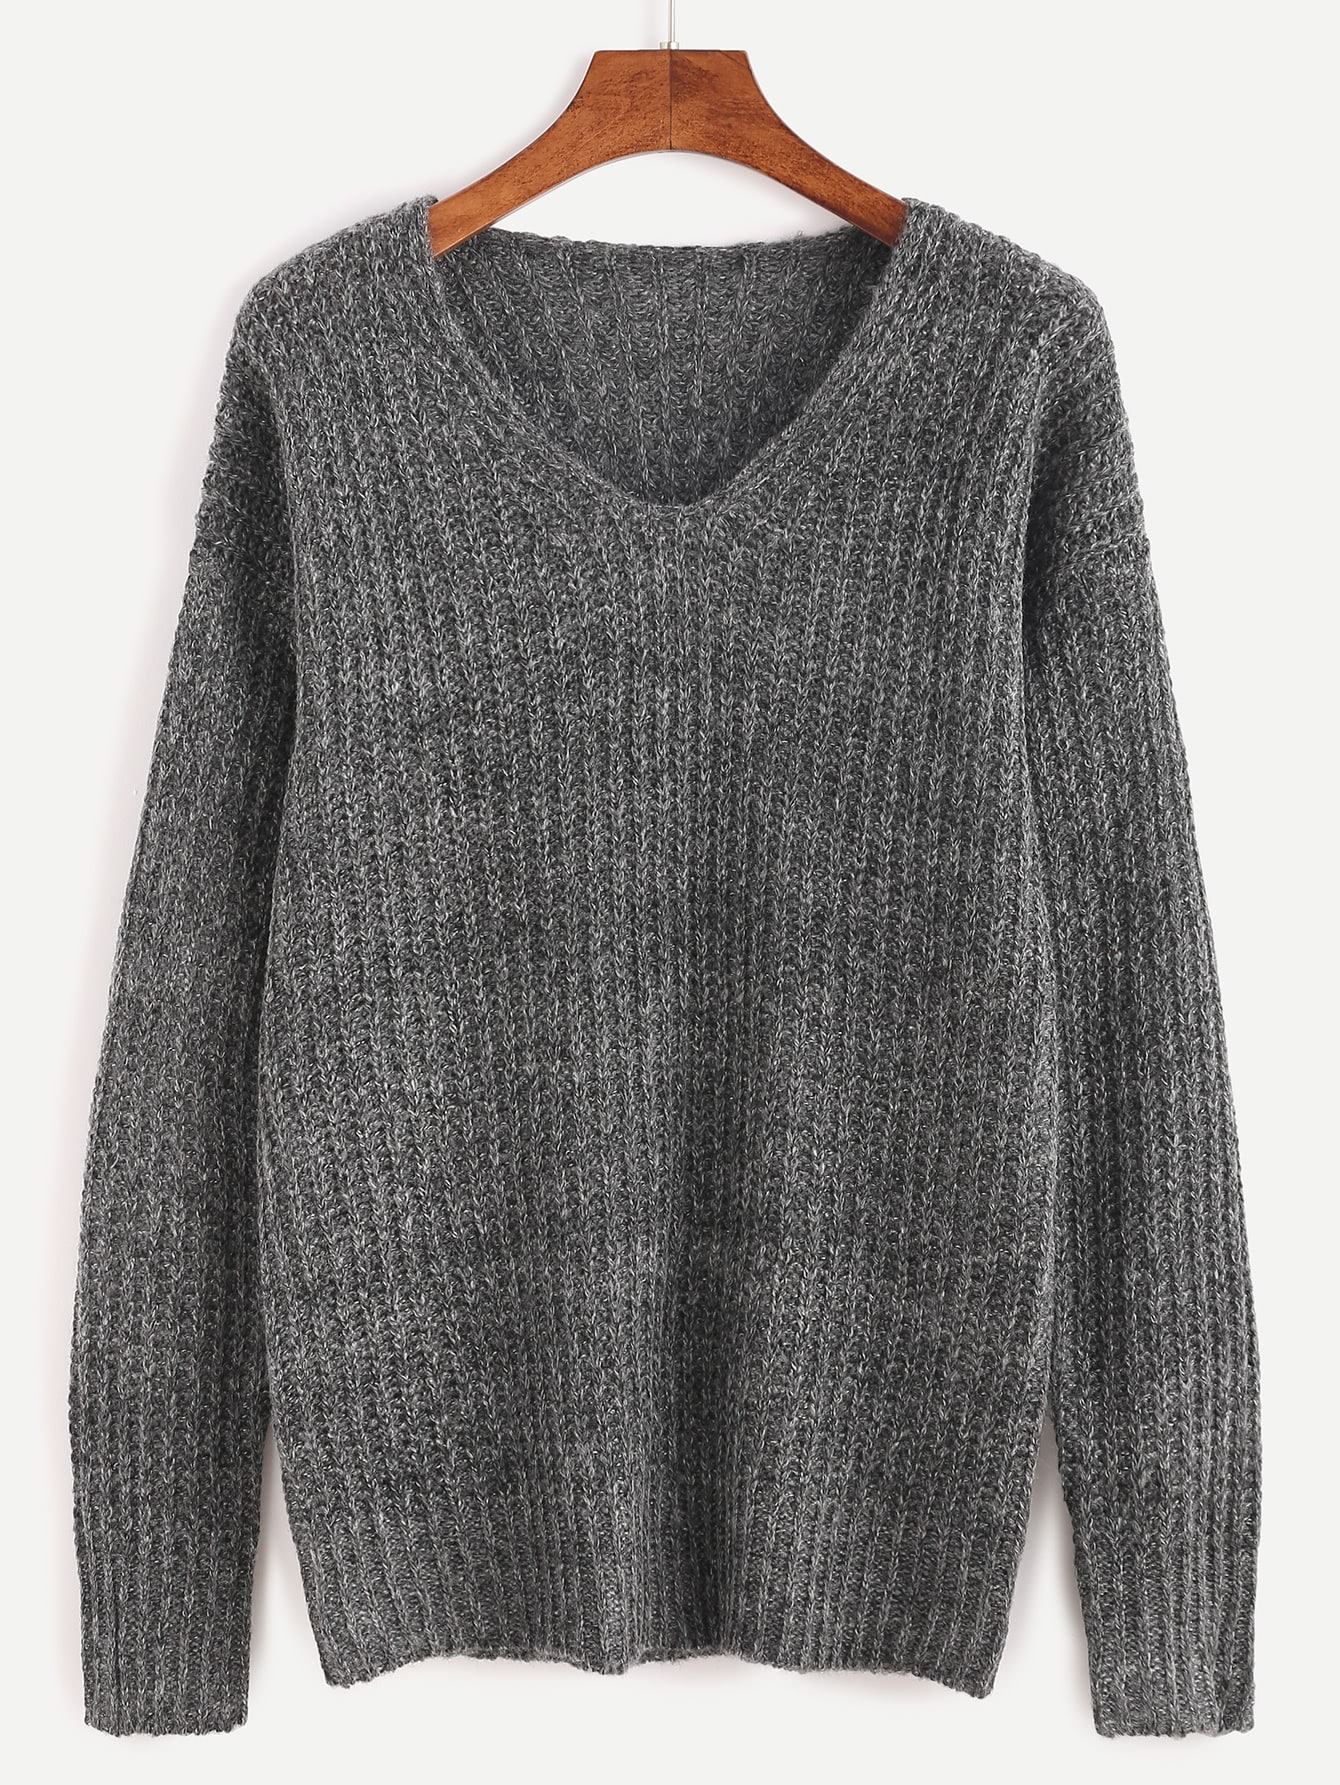 Grey Ribbed Knit Drop Shoulder Sweater sweater160920456